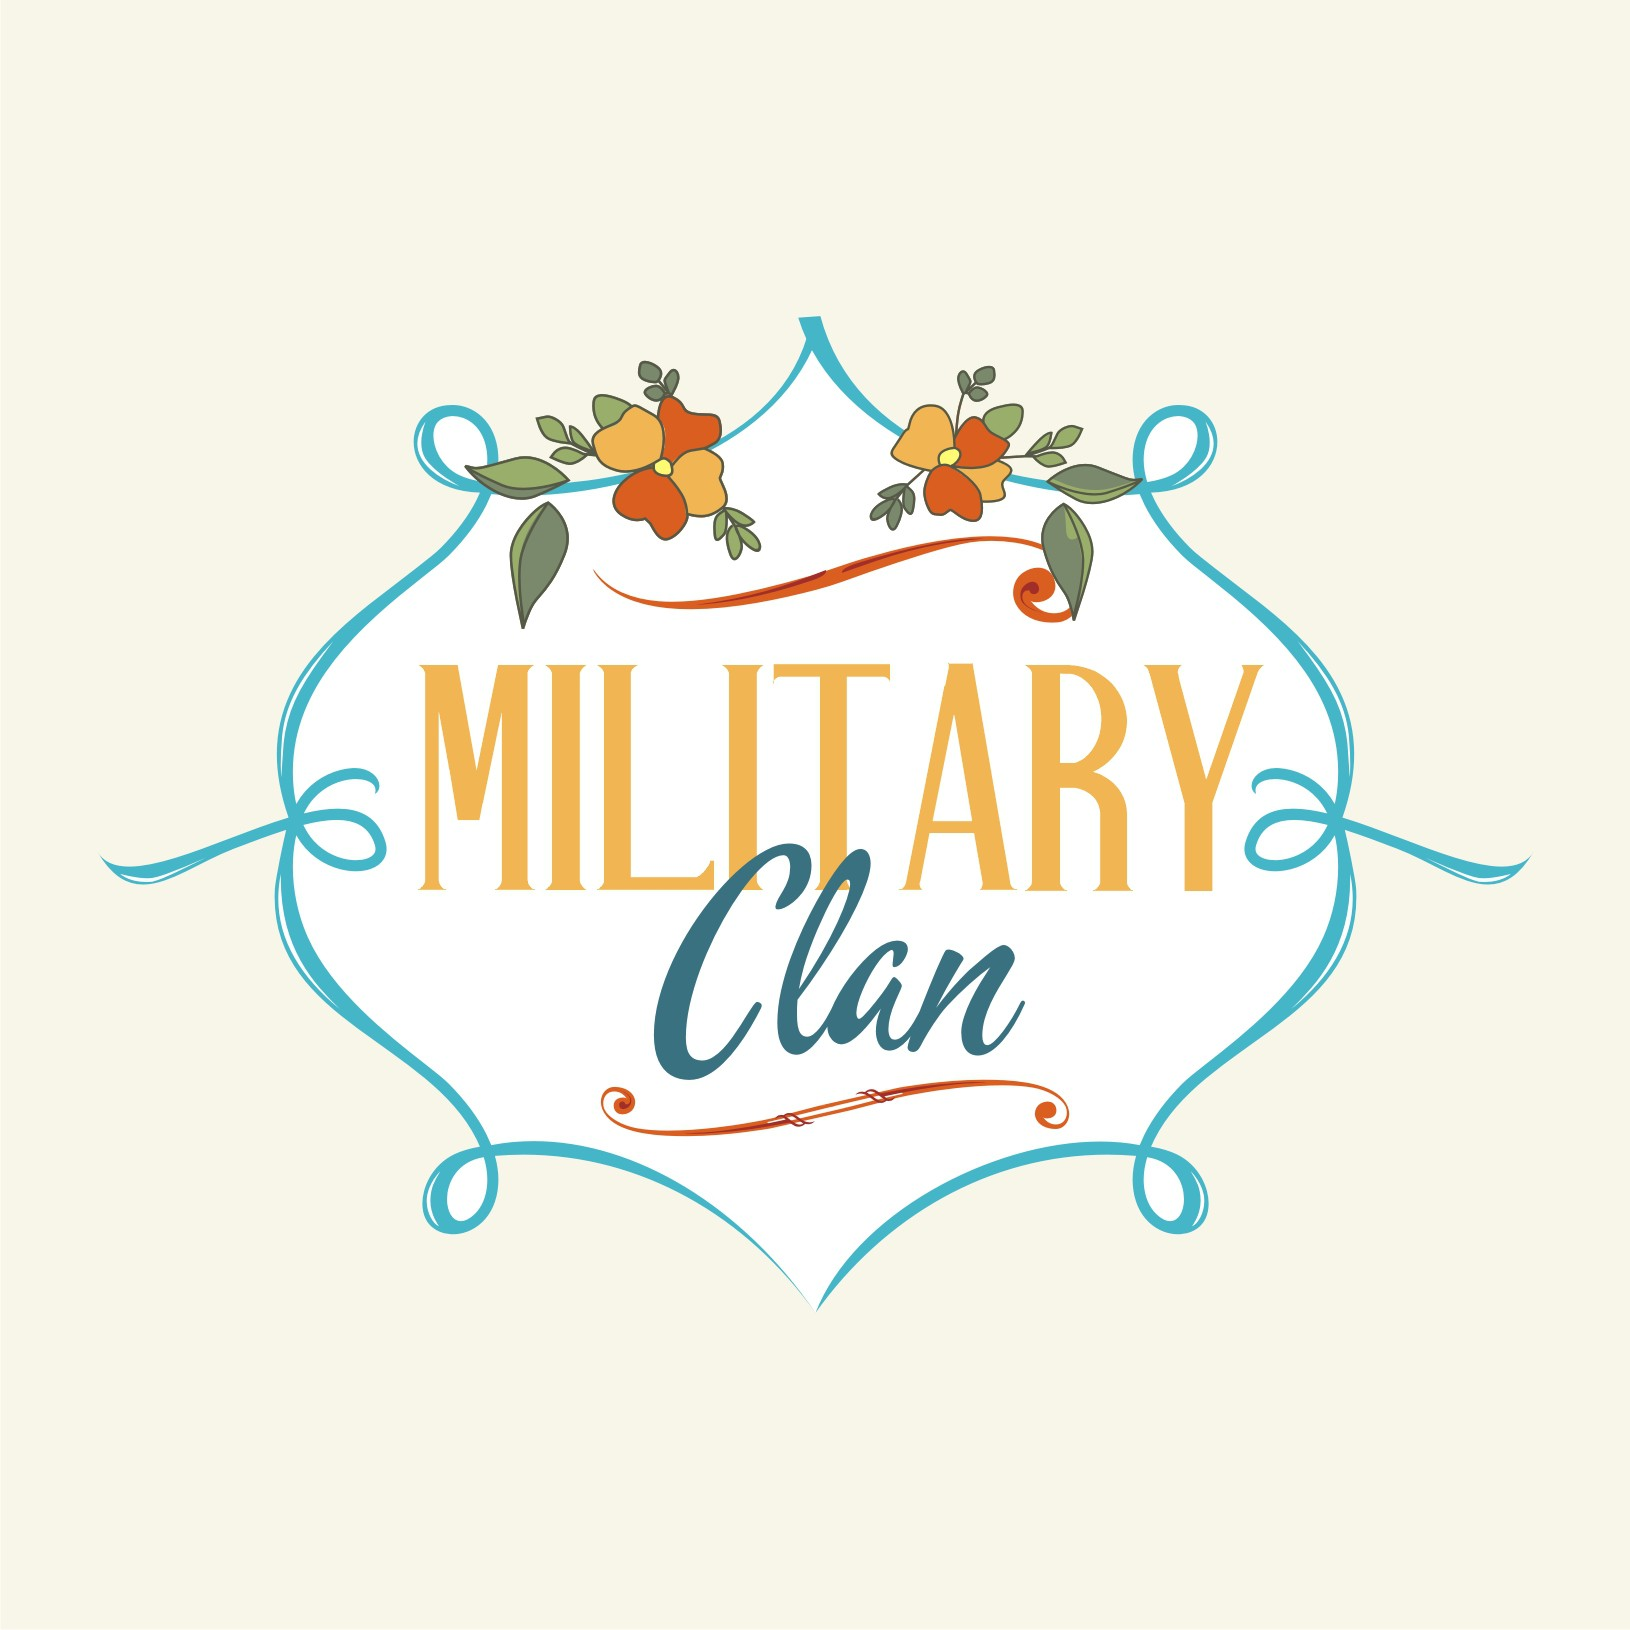 Create Logo that captures attention of our overlooked Heroines - Military Spouses